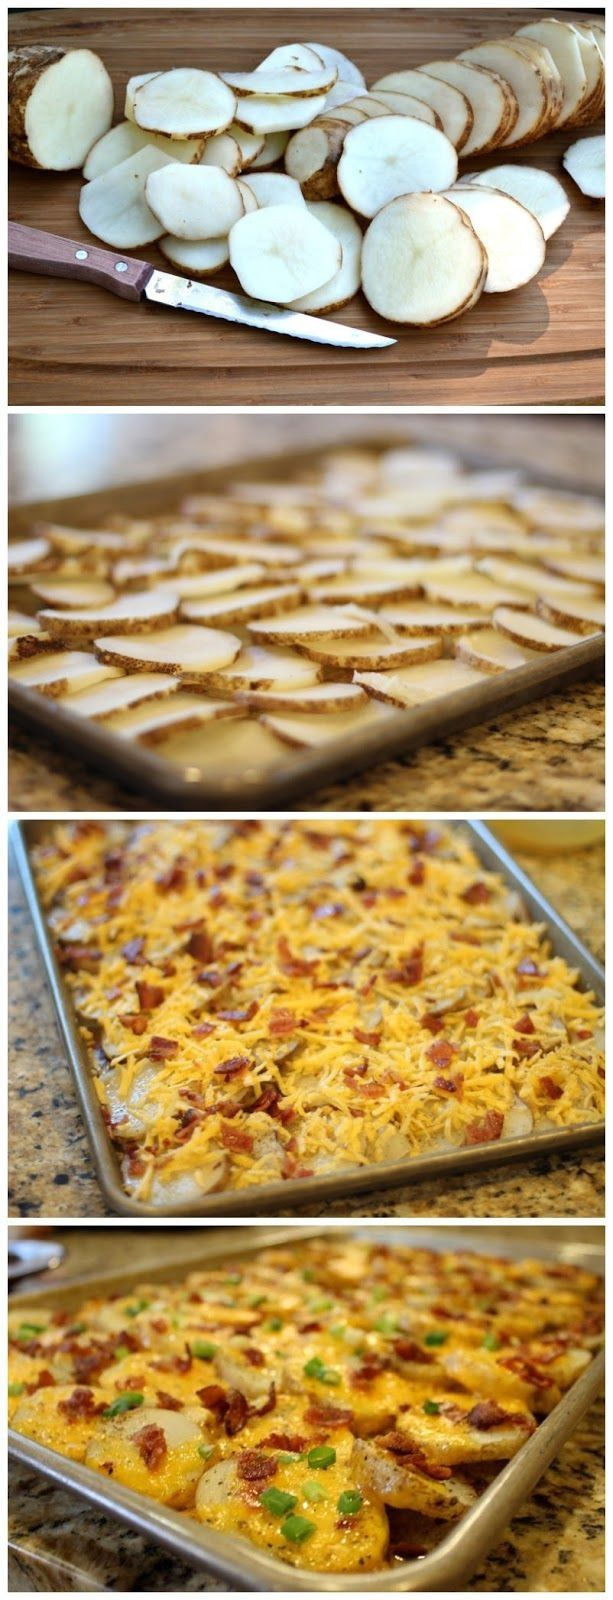 Cheese Potatos use our silpat mat and perforated baking sheet!! www.demarleathome.com